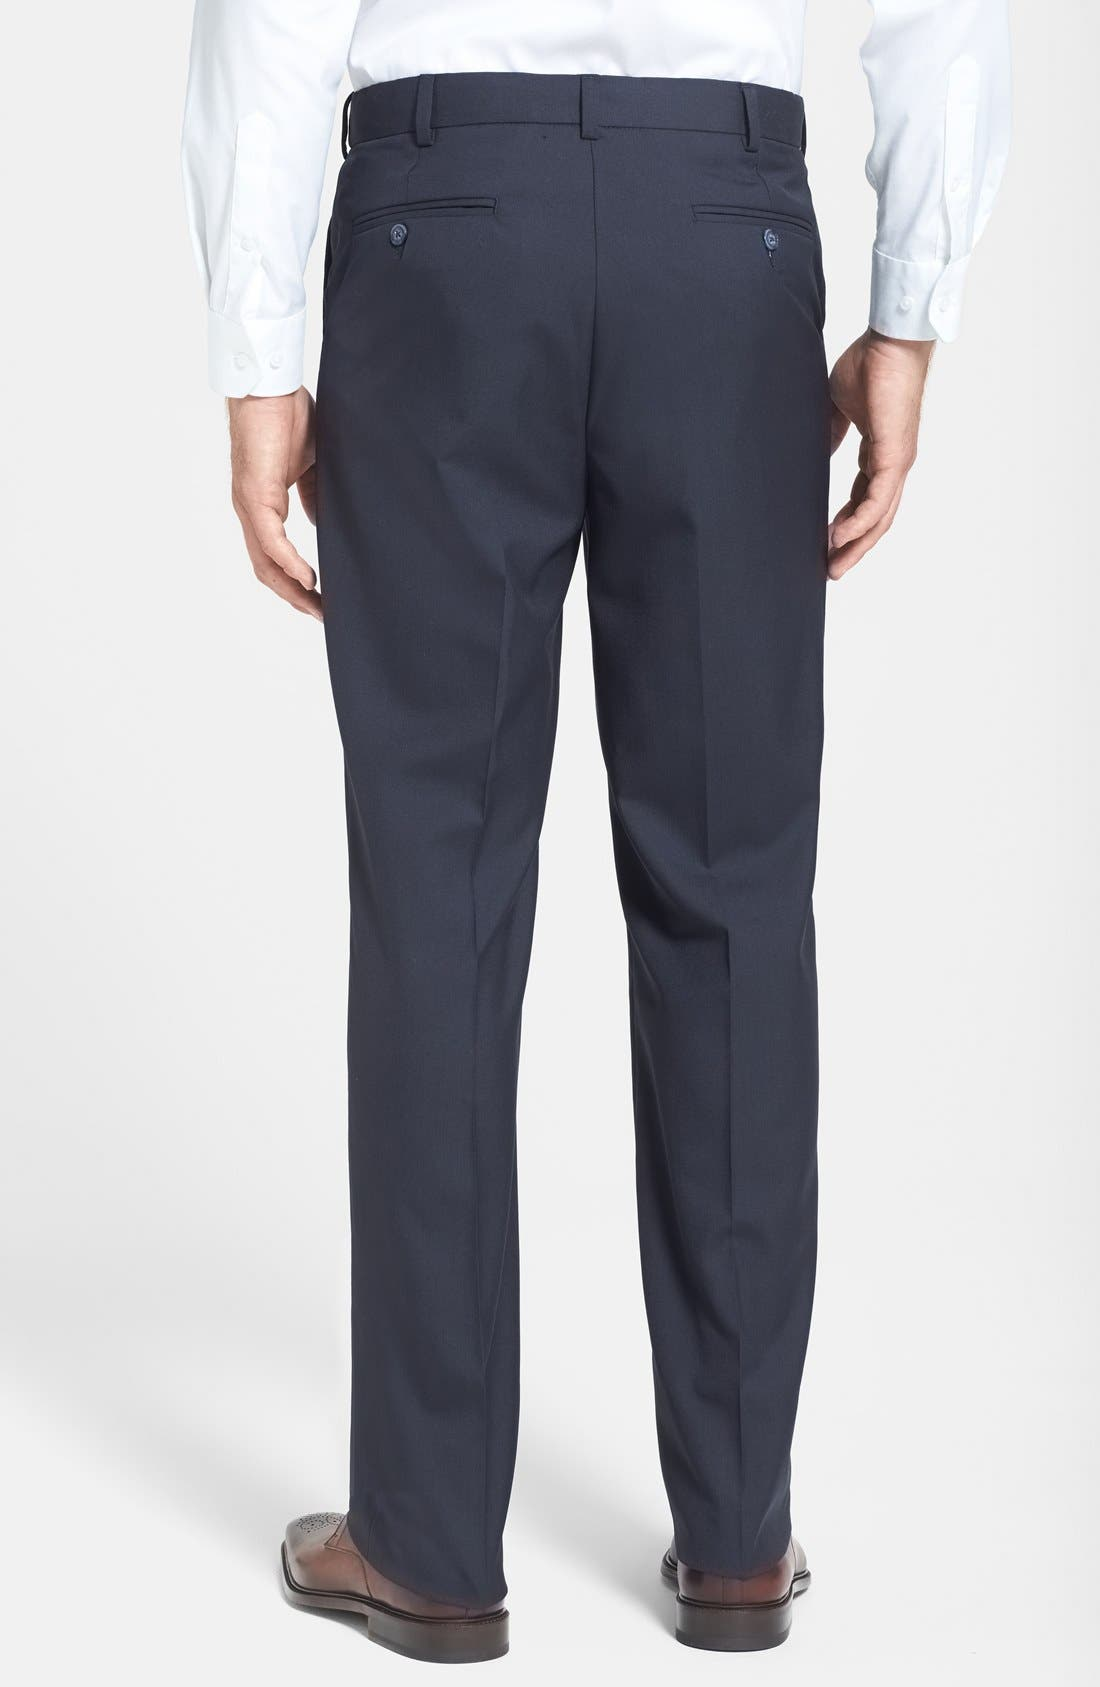 BERLE, Self Sizer Waist Tropical Weight Flat Front Trousers, Alternate thumbnail 3, color, NAVY